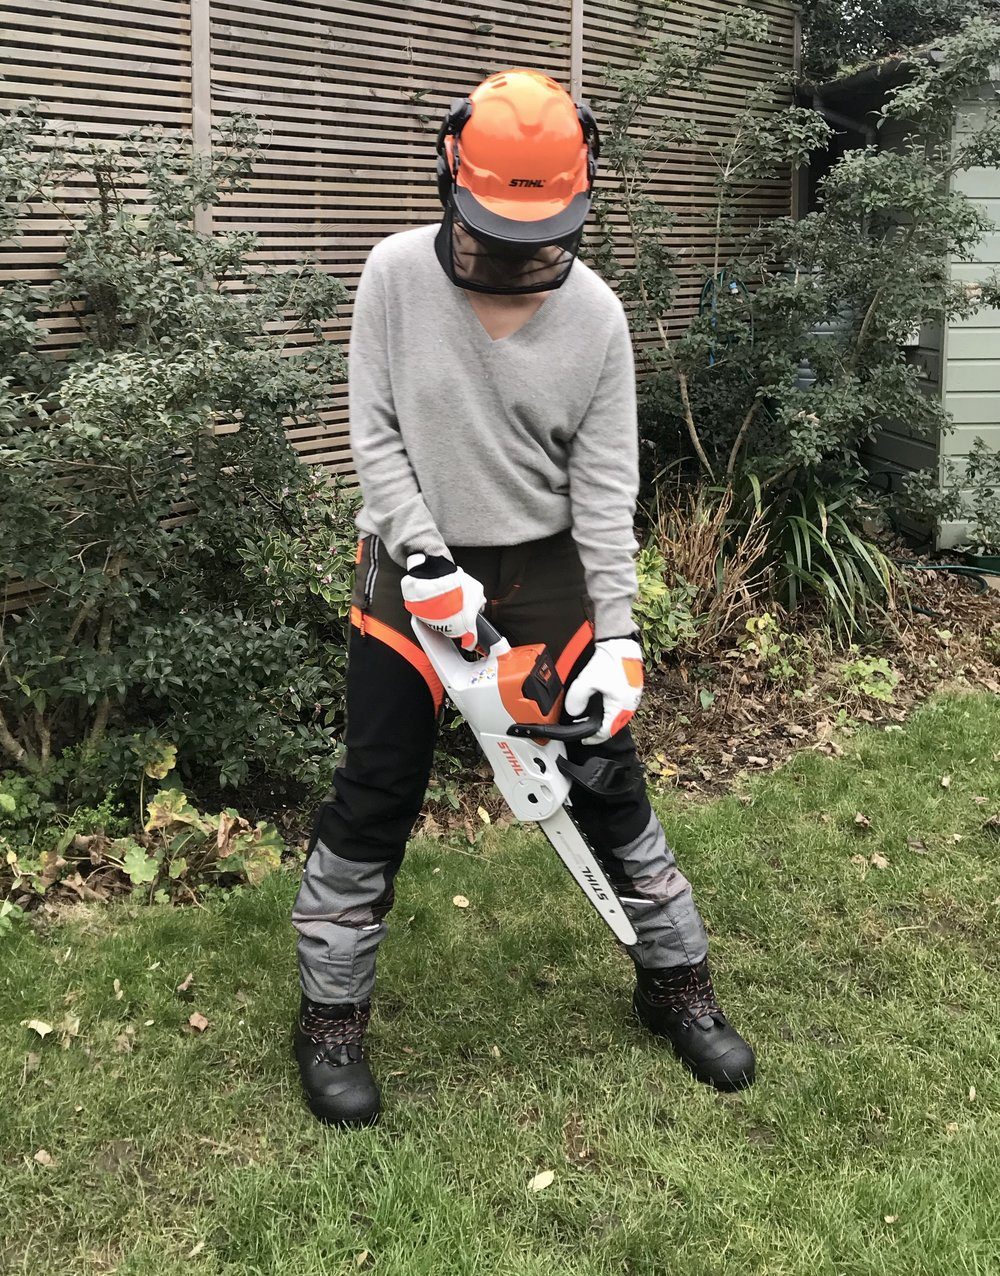 Stihl mini-chainsaw